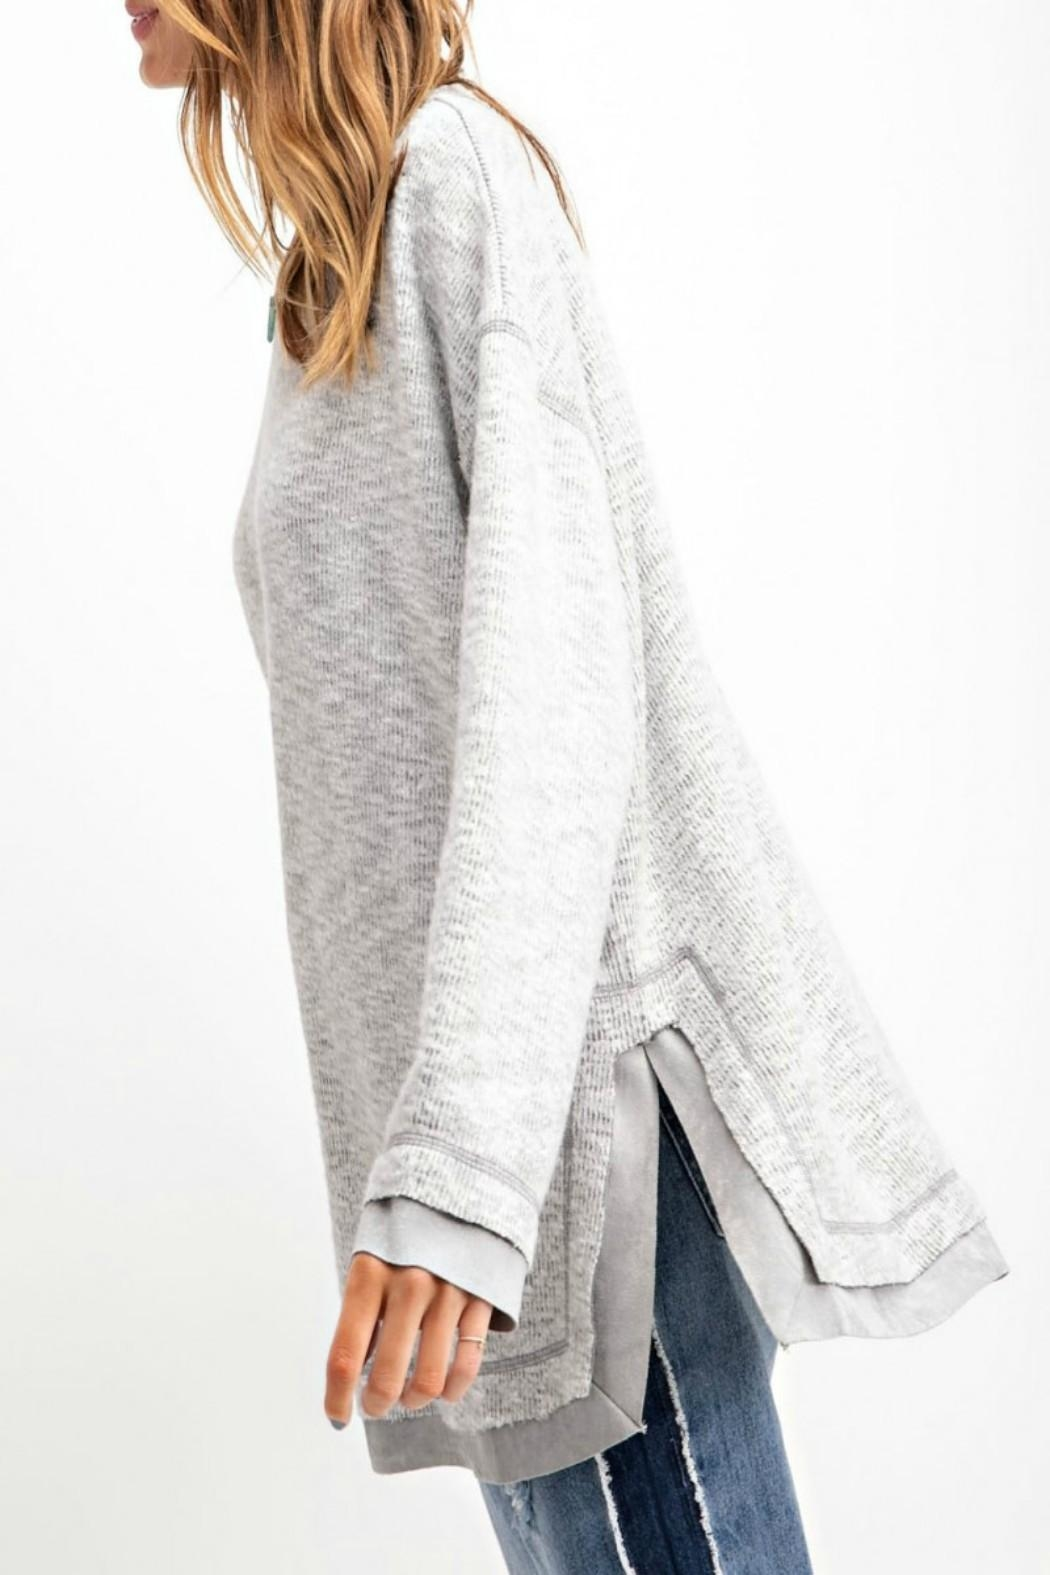 easel Hi-Low Tunic Top - Side Cropped Image